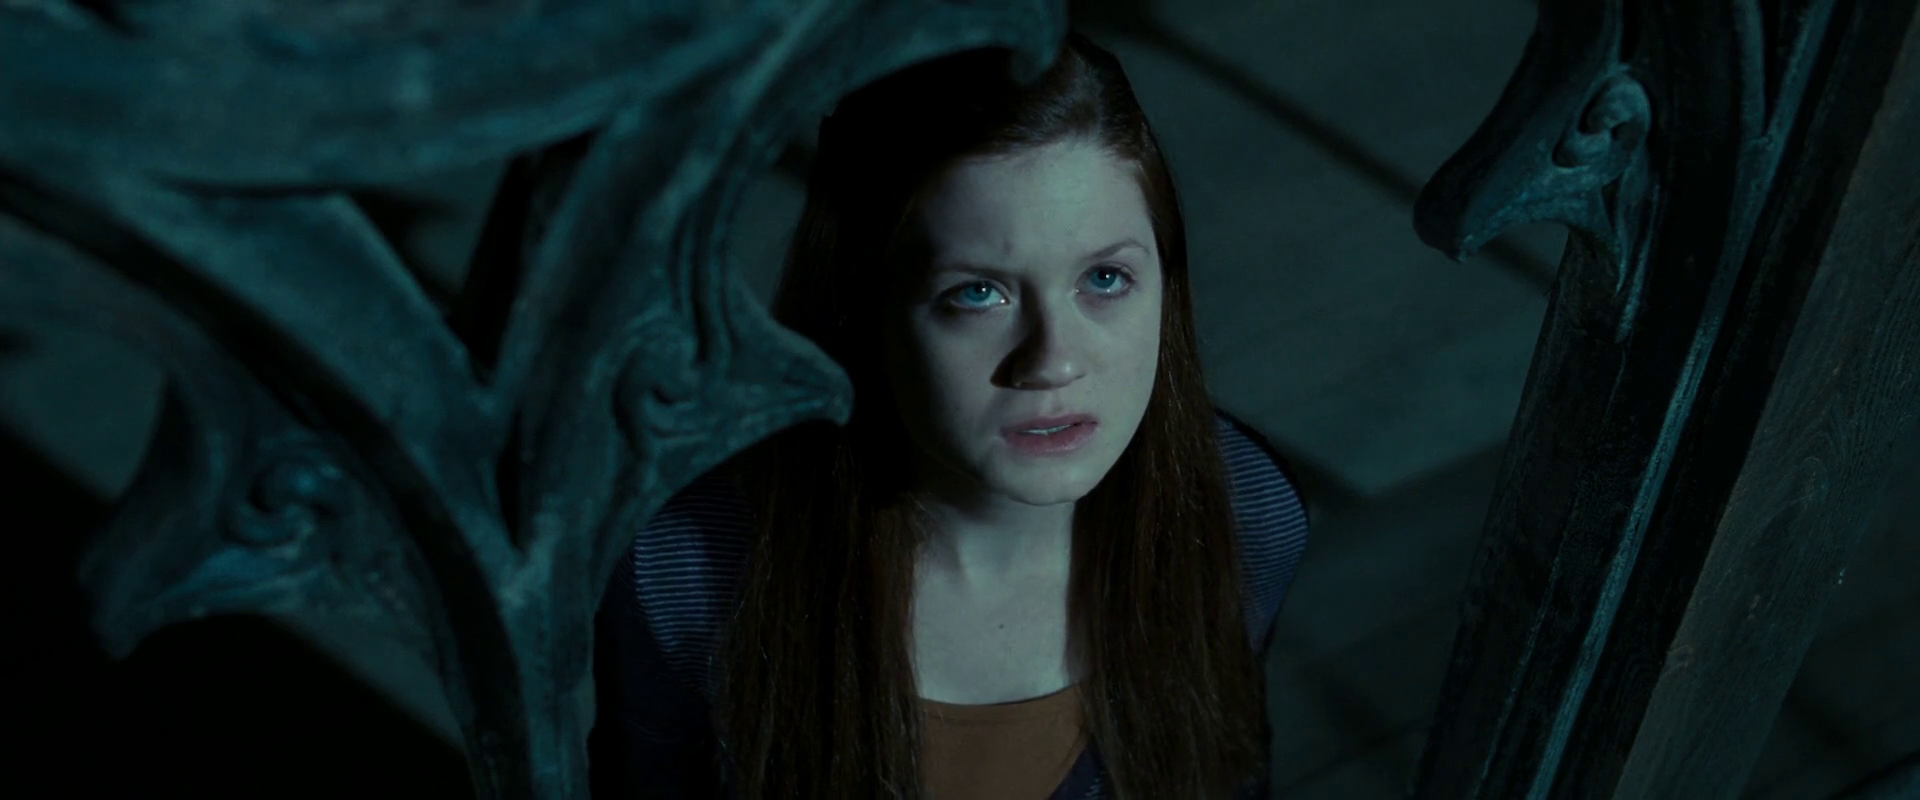 Ginny looking up at someone during the battle of Hogwarts